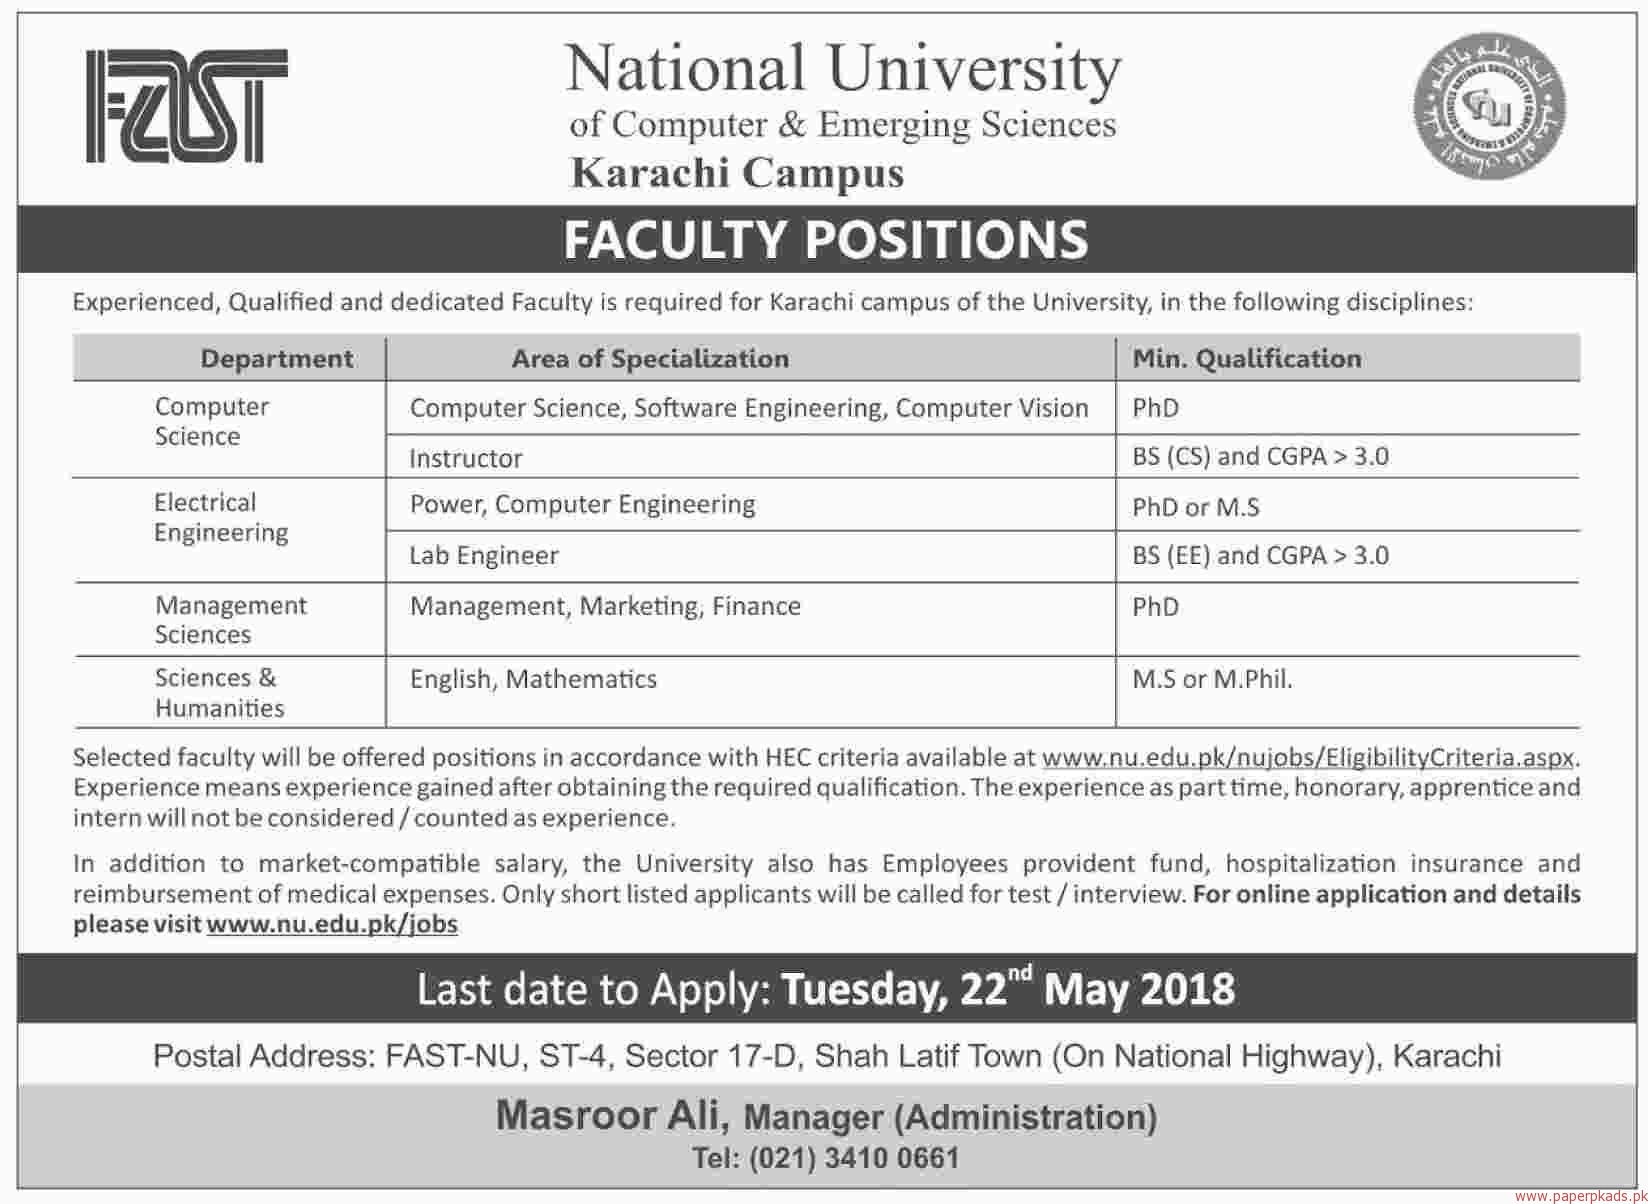 FAST National University of Computer & Emerging Sciences Jobs 2018